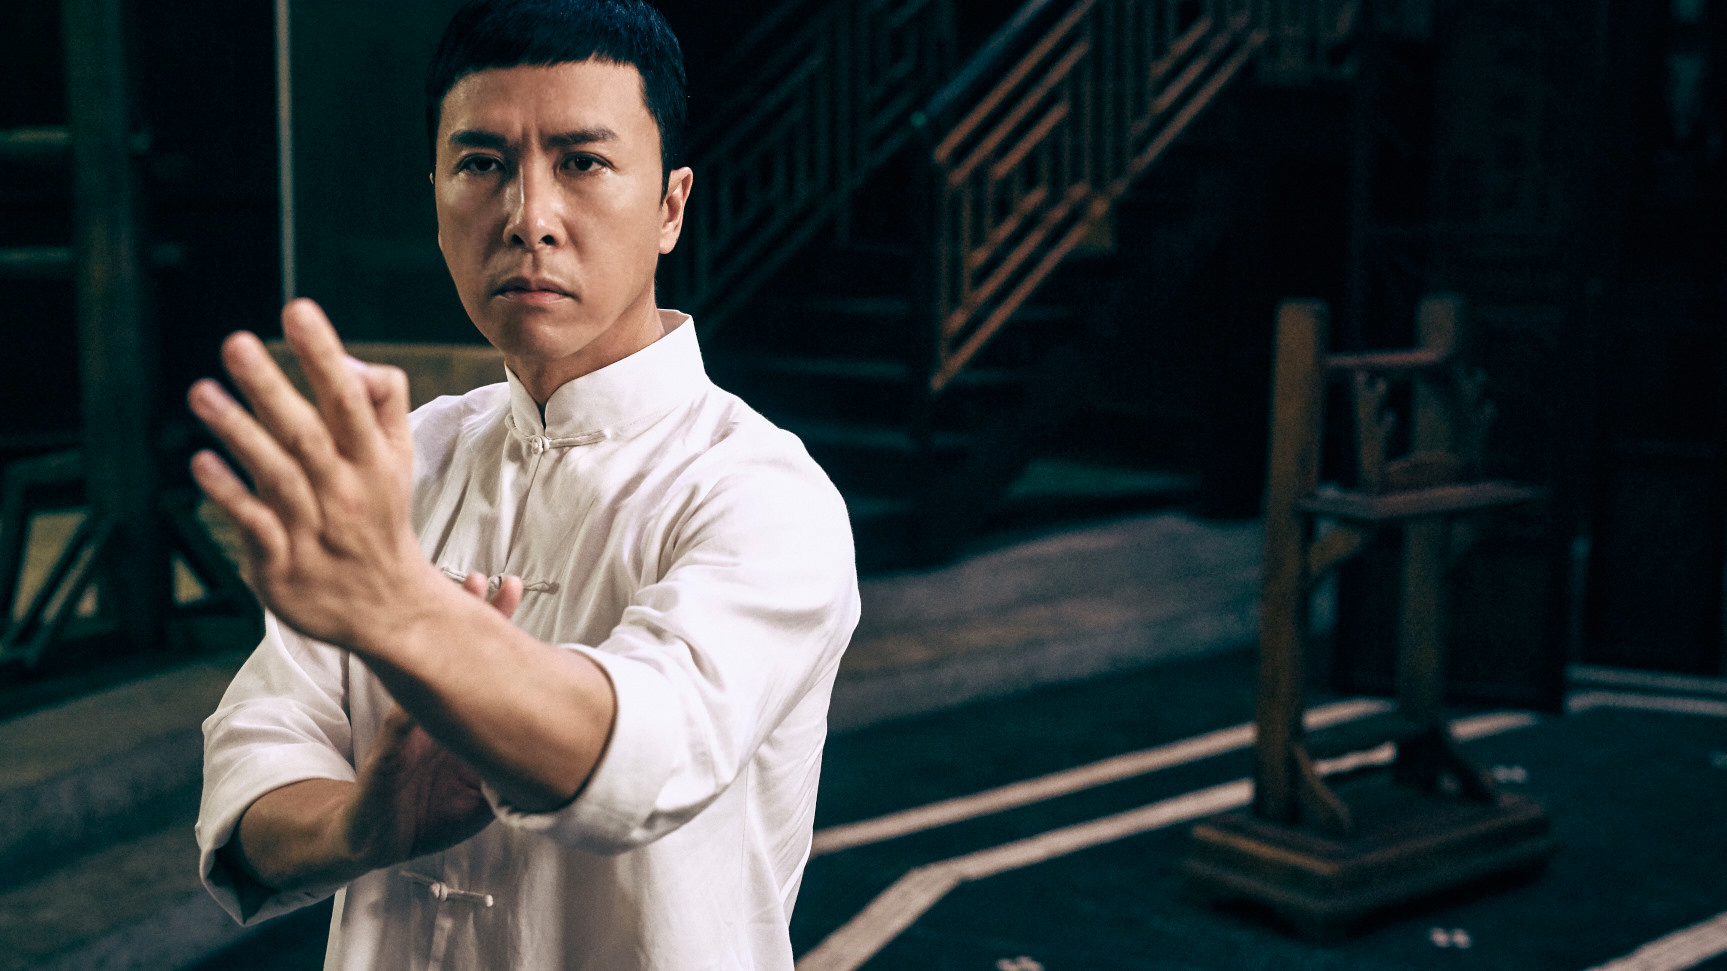 HQ Ip Man Wallpapers | File 746.72Kb